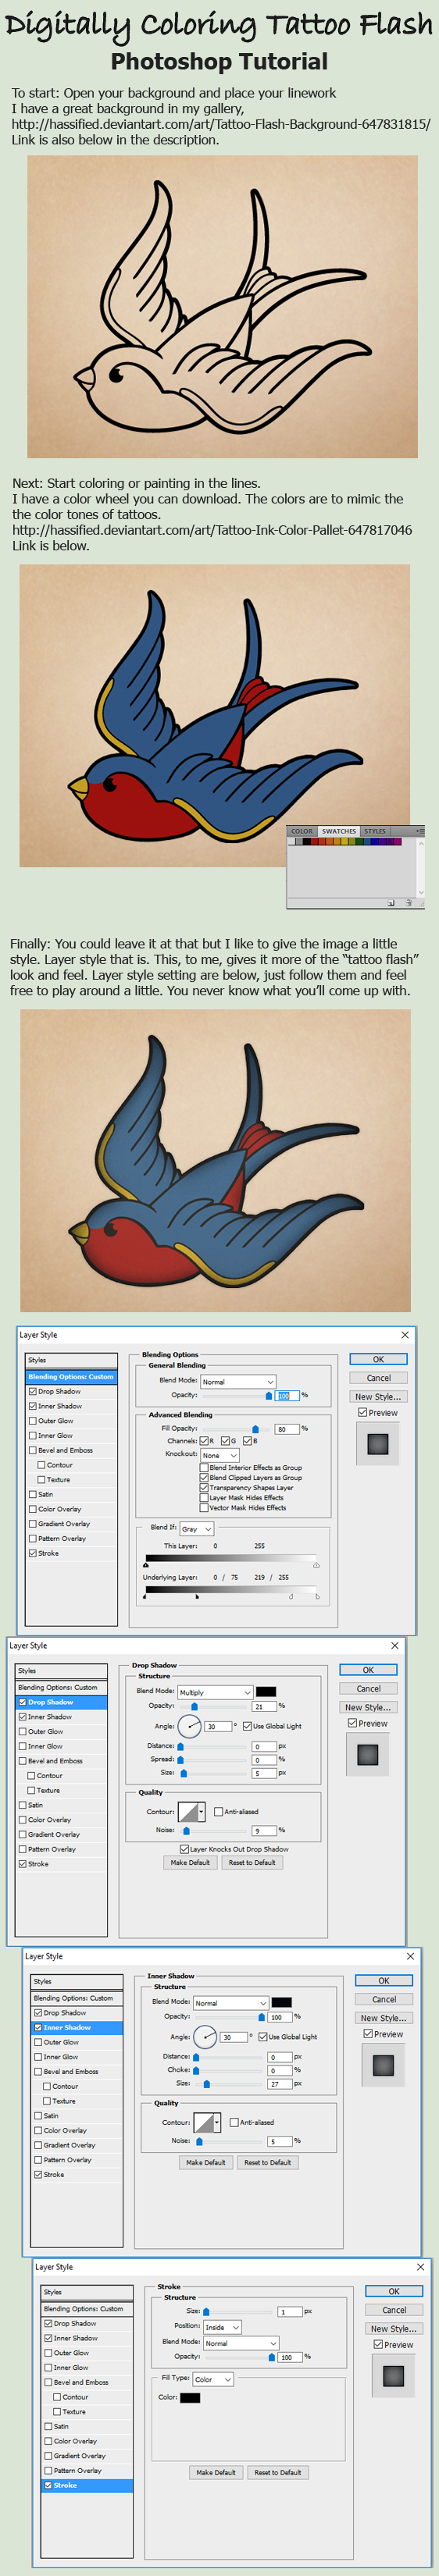 Digitally coloring tattoo flash tutorial by hassified on deviantart digitally coloring tattoo flash tutorial by hassified digitally coloring tattoo flash tutorial by hassified baditri Images